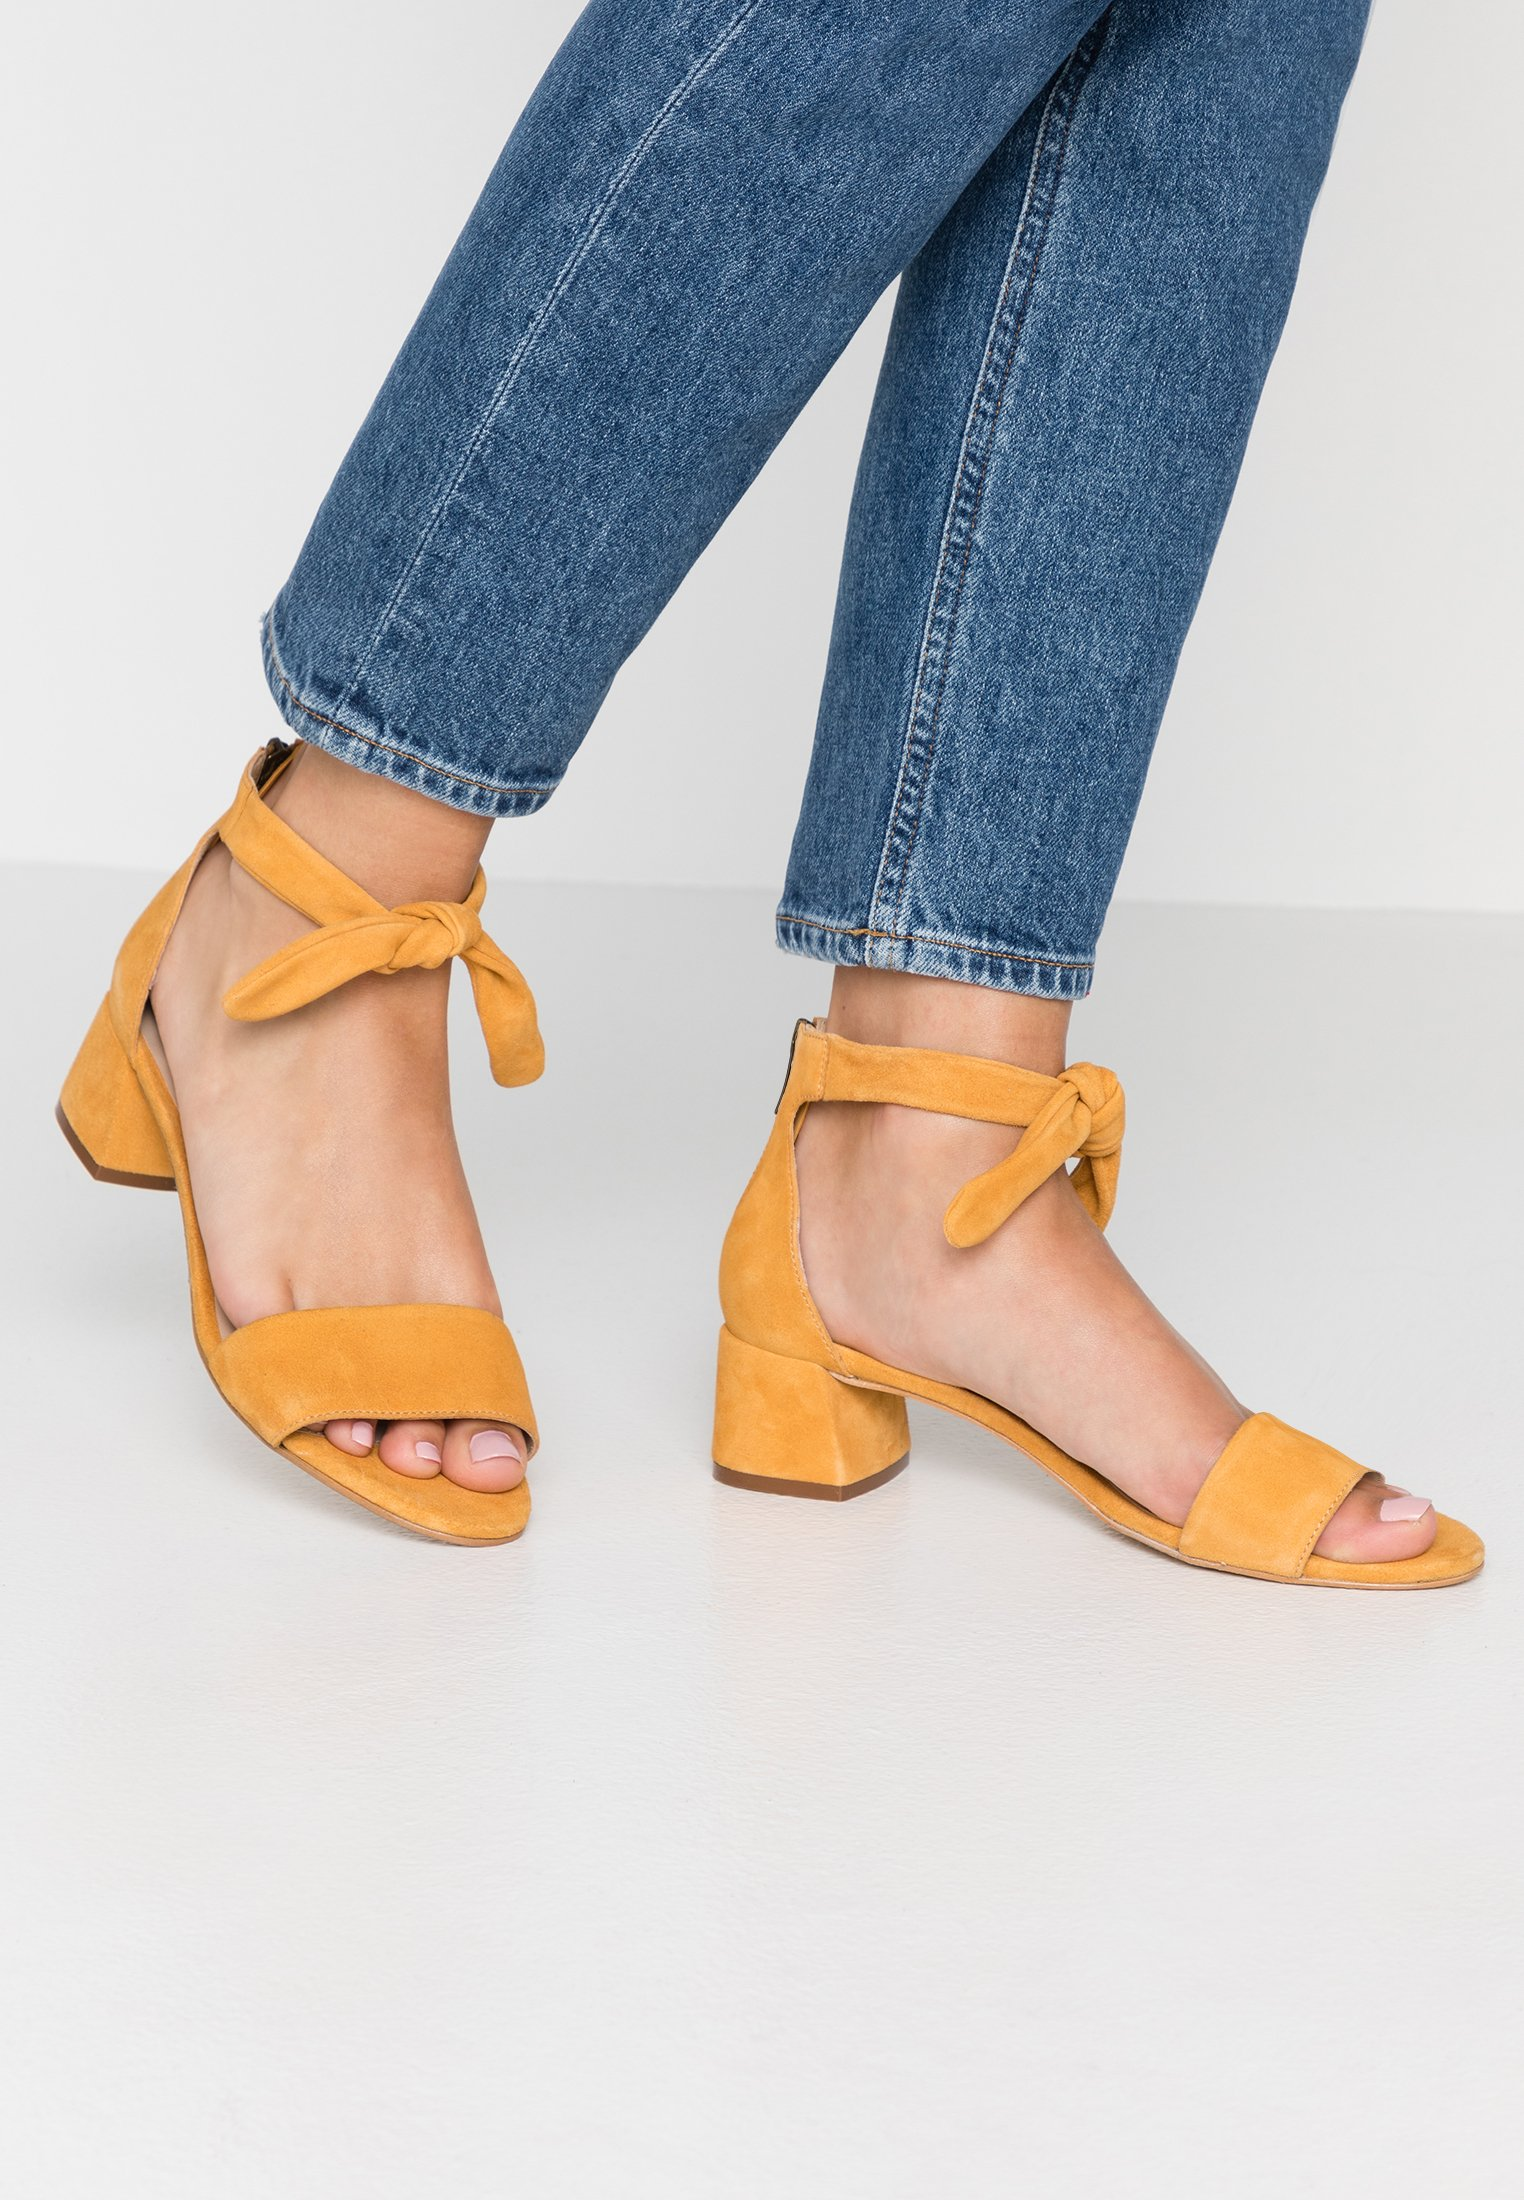 SandalesYellow amp;berry Mint Wide Fit SandalesYellow amp;berry Fit Mint Wide lJ3T1FcK